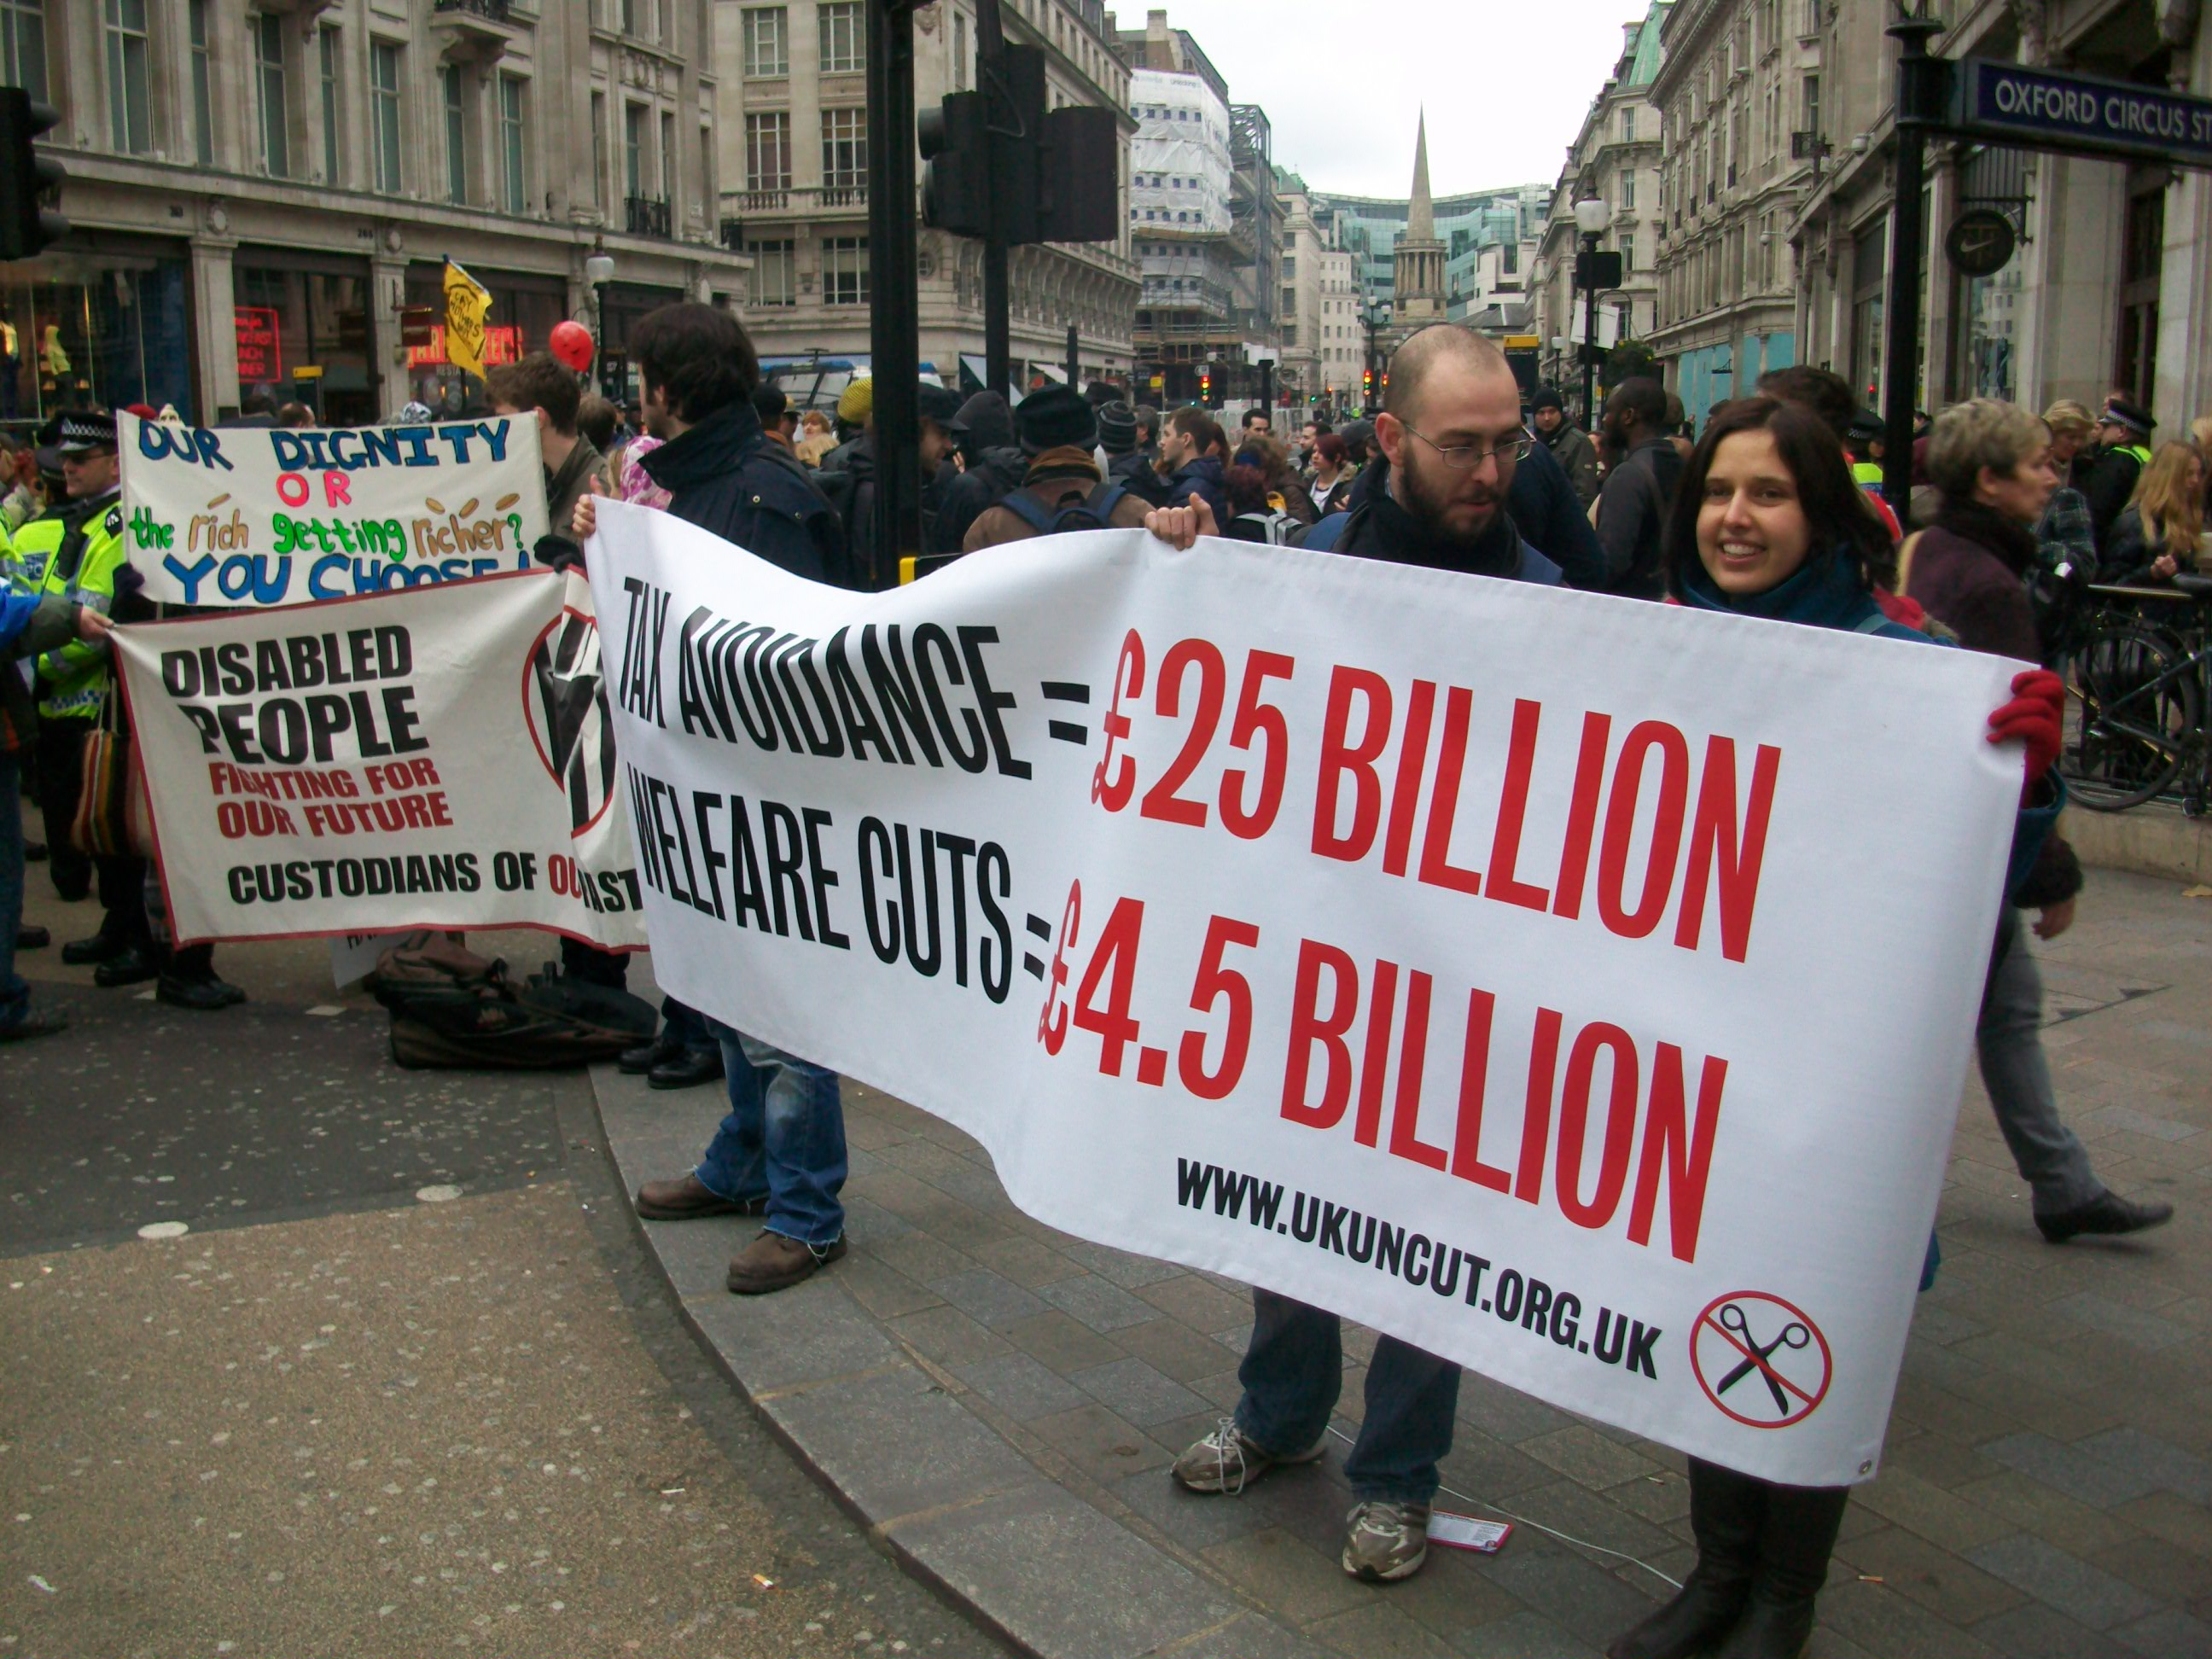 Protest in central London against cuts to welfare, 2012